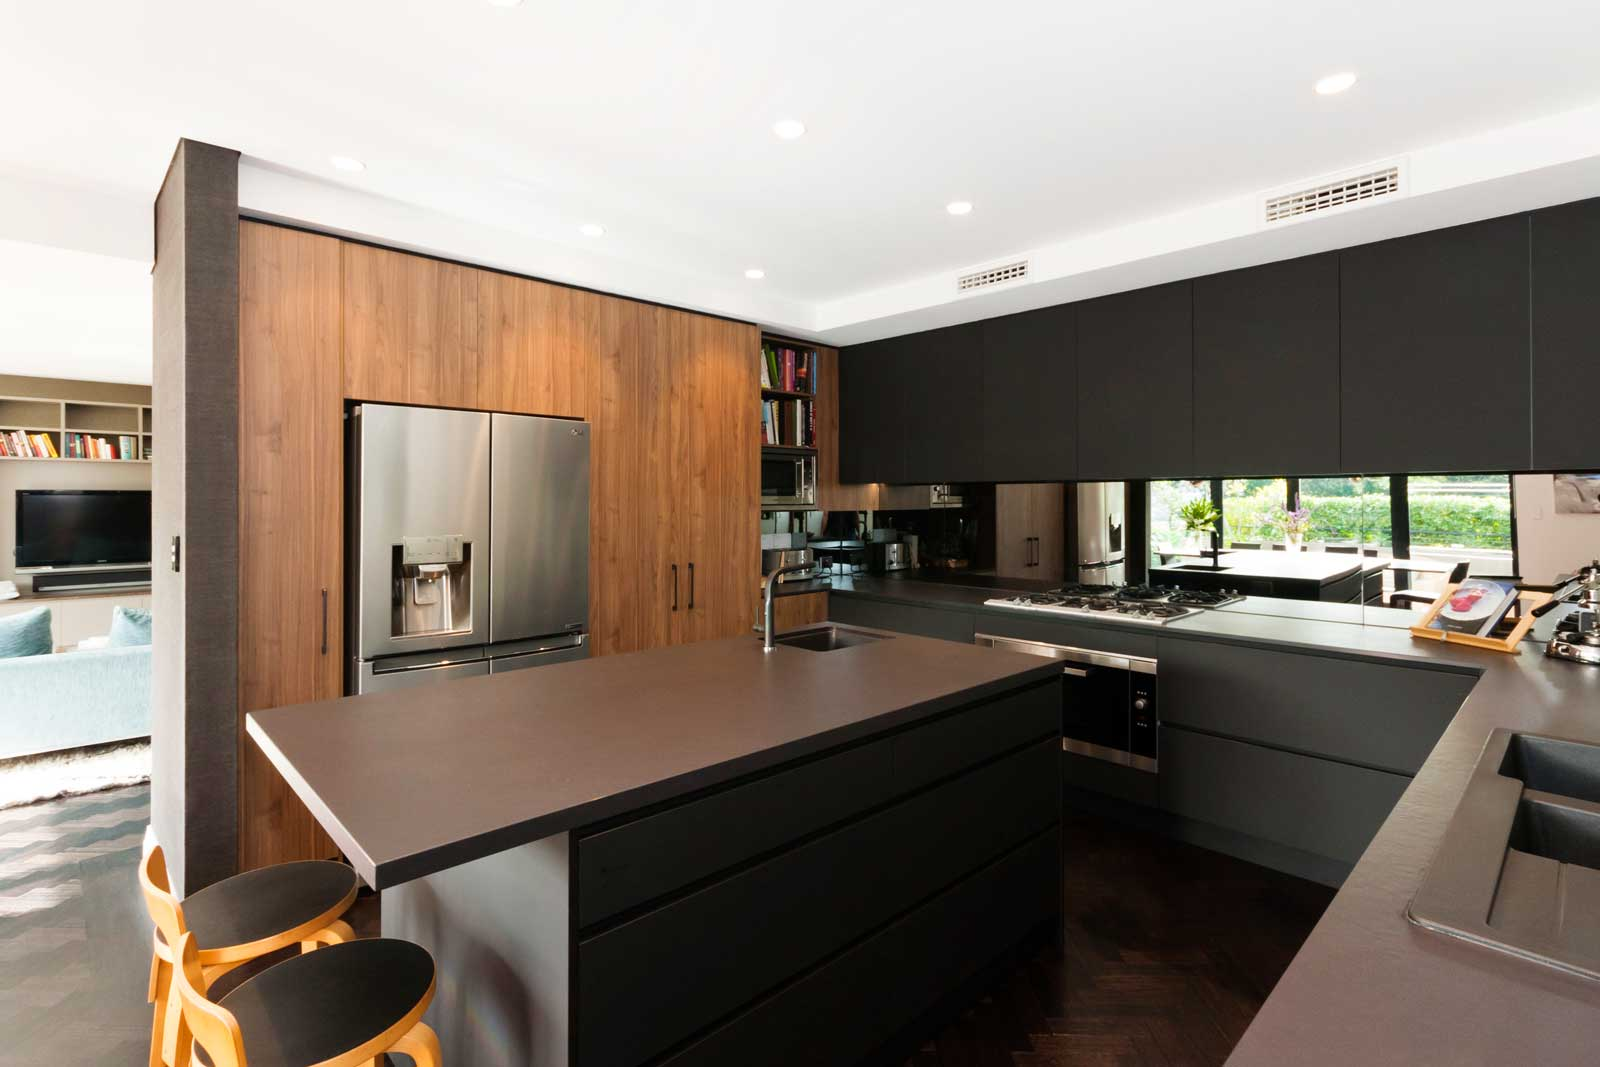 Black & walnut kitchen design featuring Miele cooking appliances, Miele dishwasher, LG fridge, Sirius rangehood, Blanco microwave, Blum cabinet hardware, Abey sink & mixer, Franke sink & mixer and Dekton Sirius benchtop.